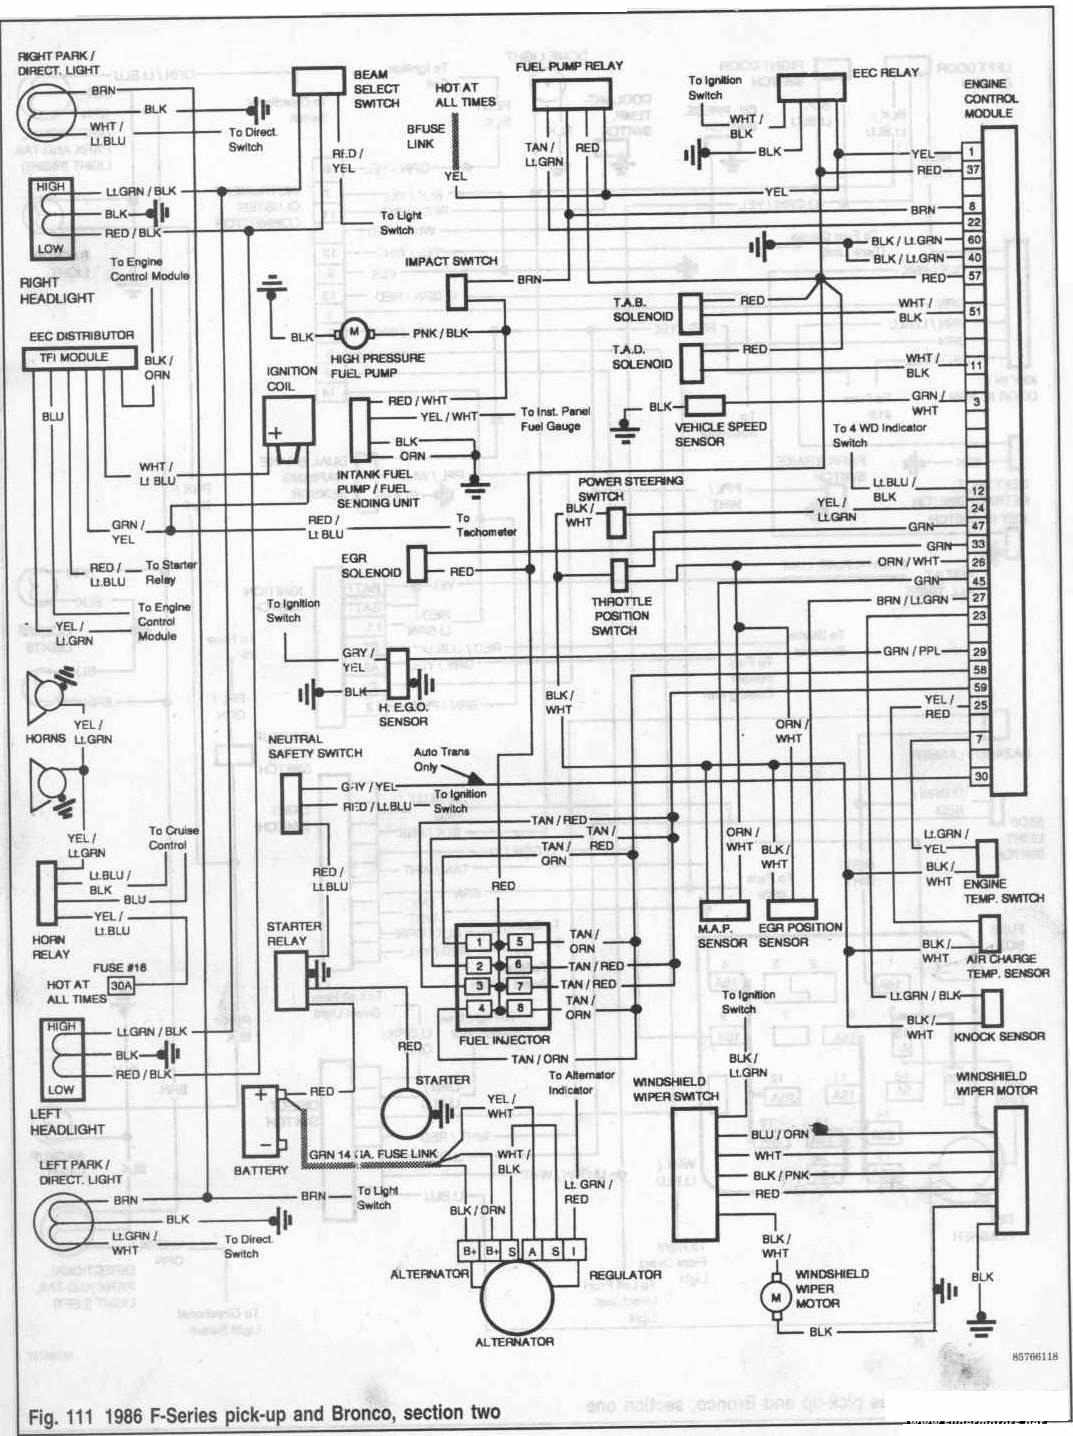 86 F150 Wiring Diagram Getting Ready With Ford 5l Engine 2 Todays Rh 5 10 1813weddingbarn Com Radio 1986 Horn